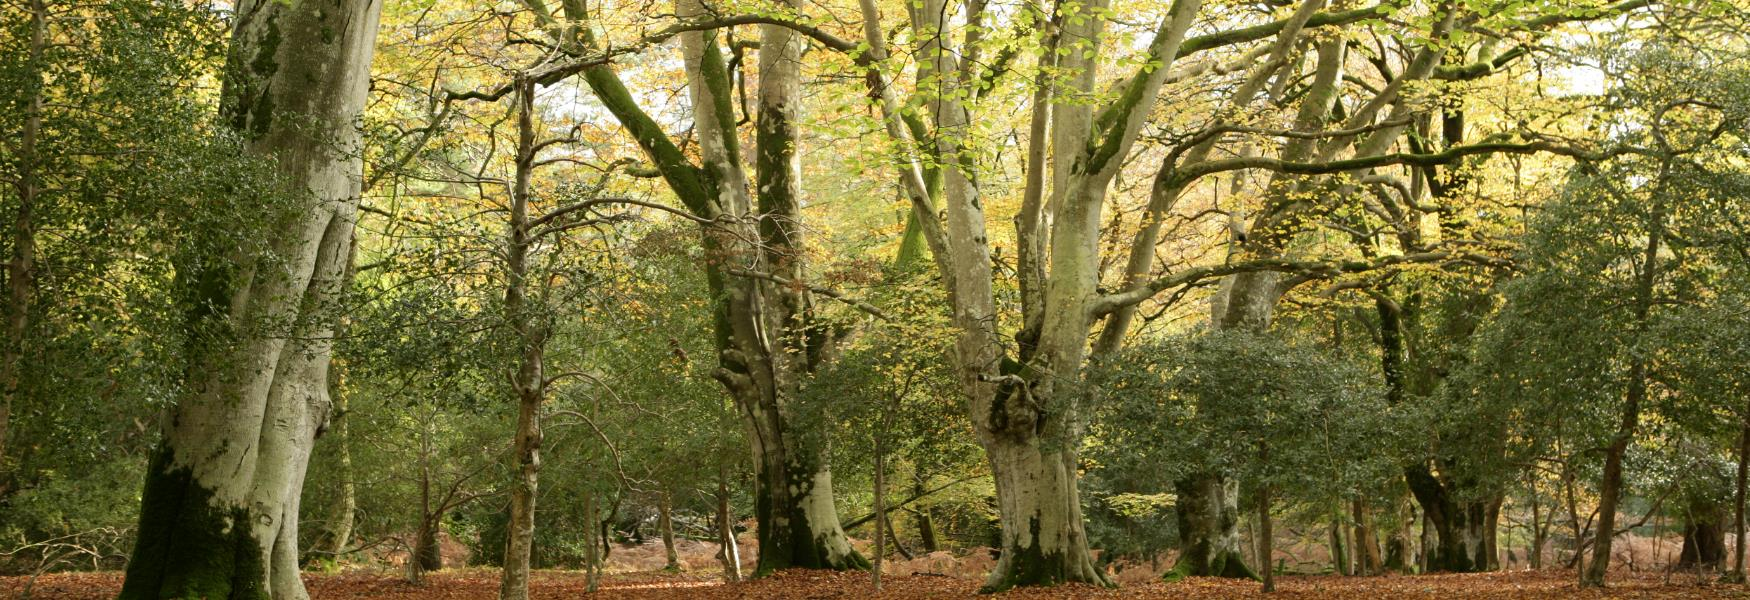 trees in the new forest